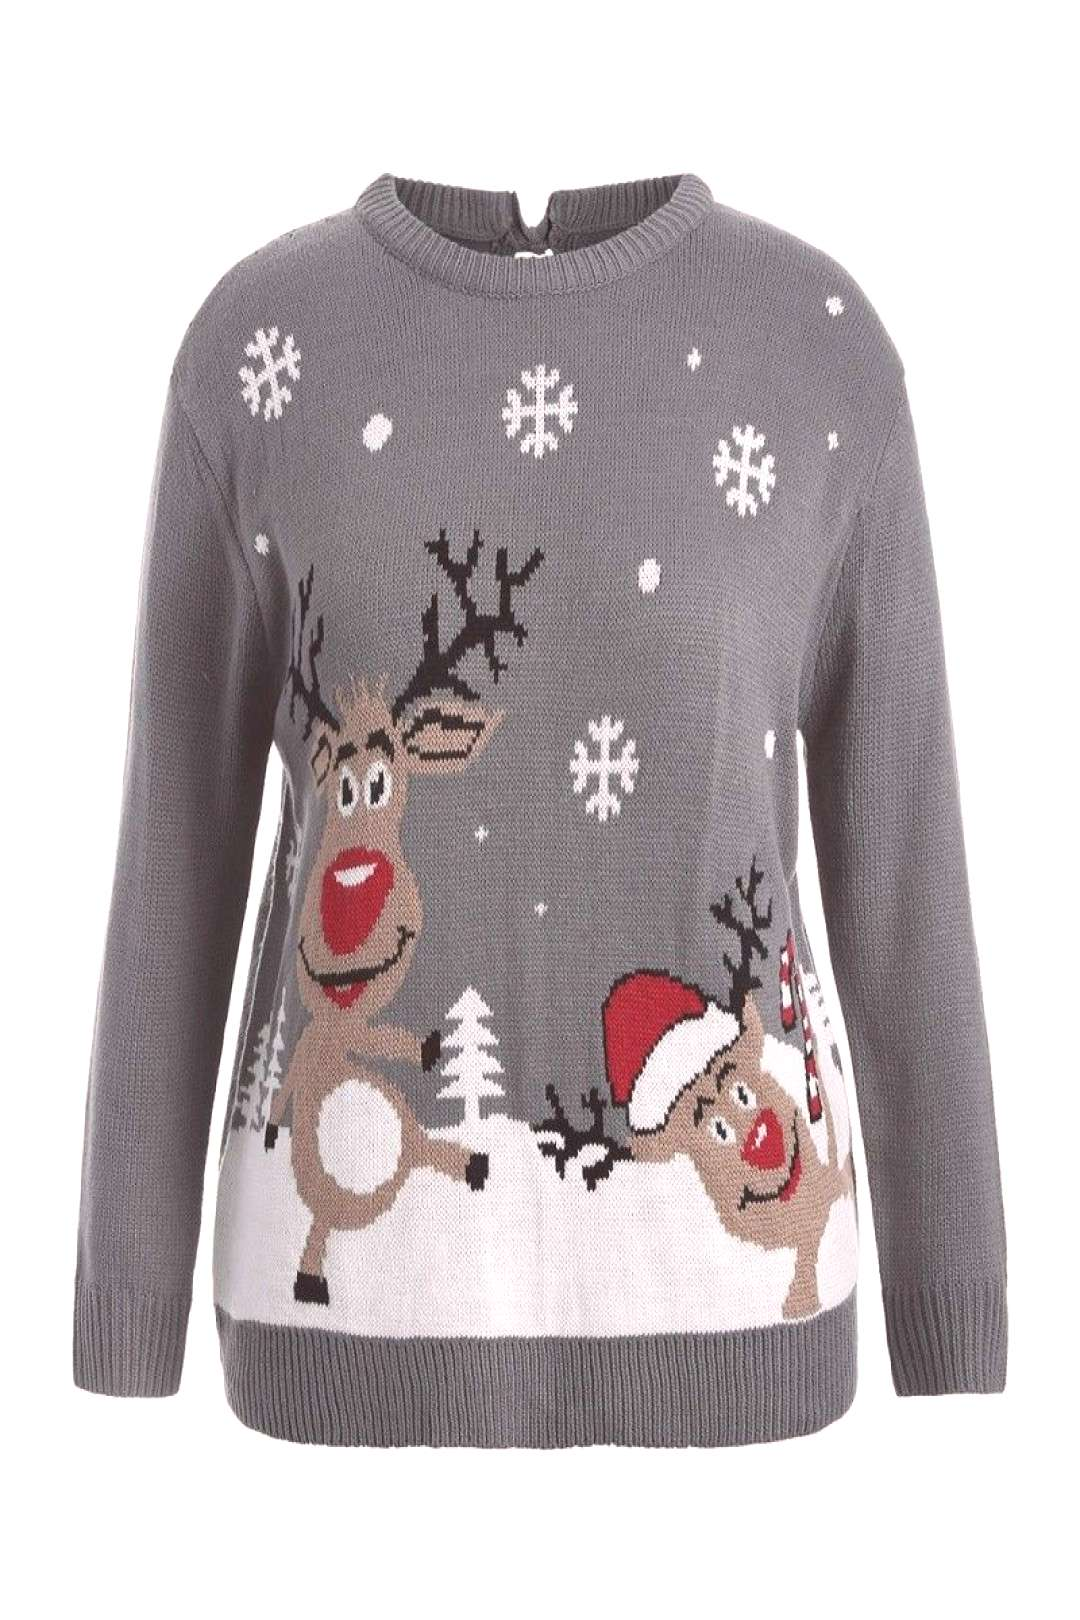 Back Bowknot Snowflake Cartoon Pattern Christmas Sweater - Gray - 3O11659713 - Original Design-Wome